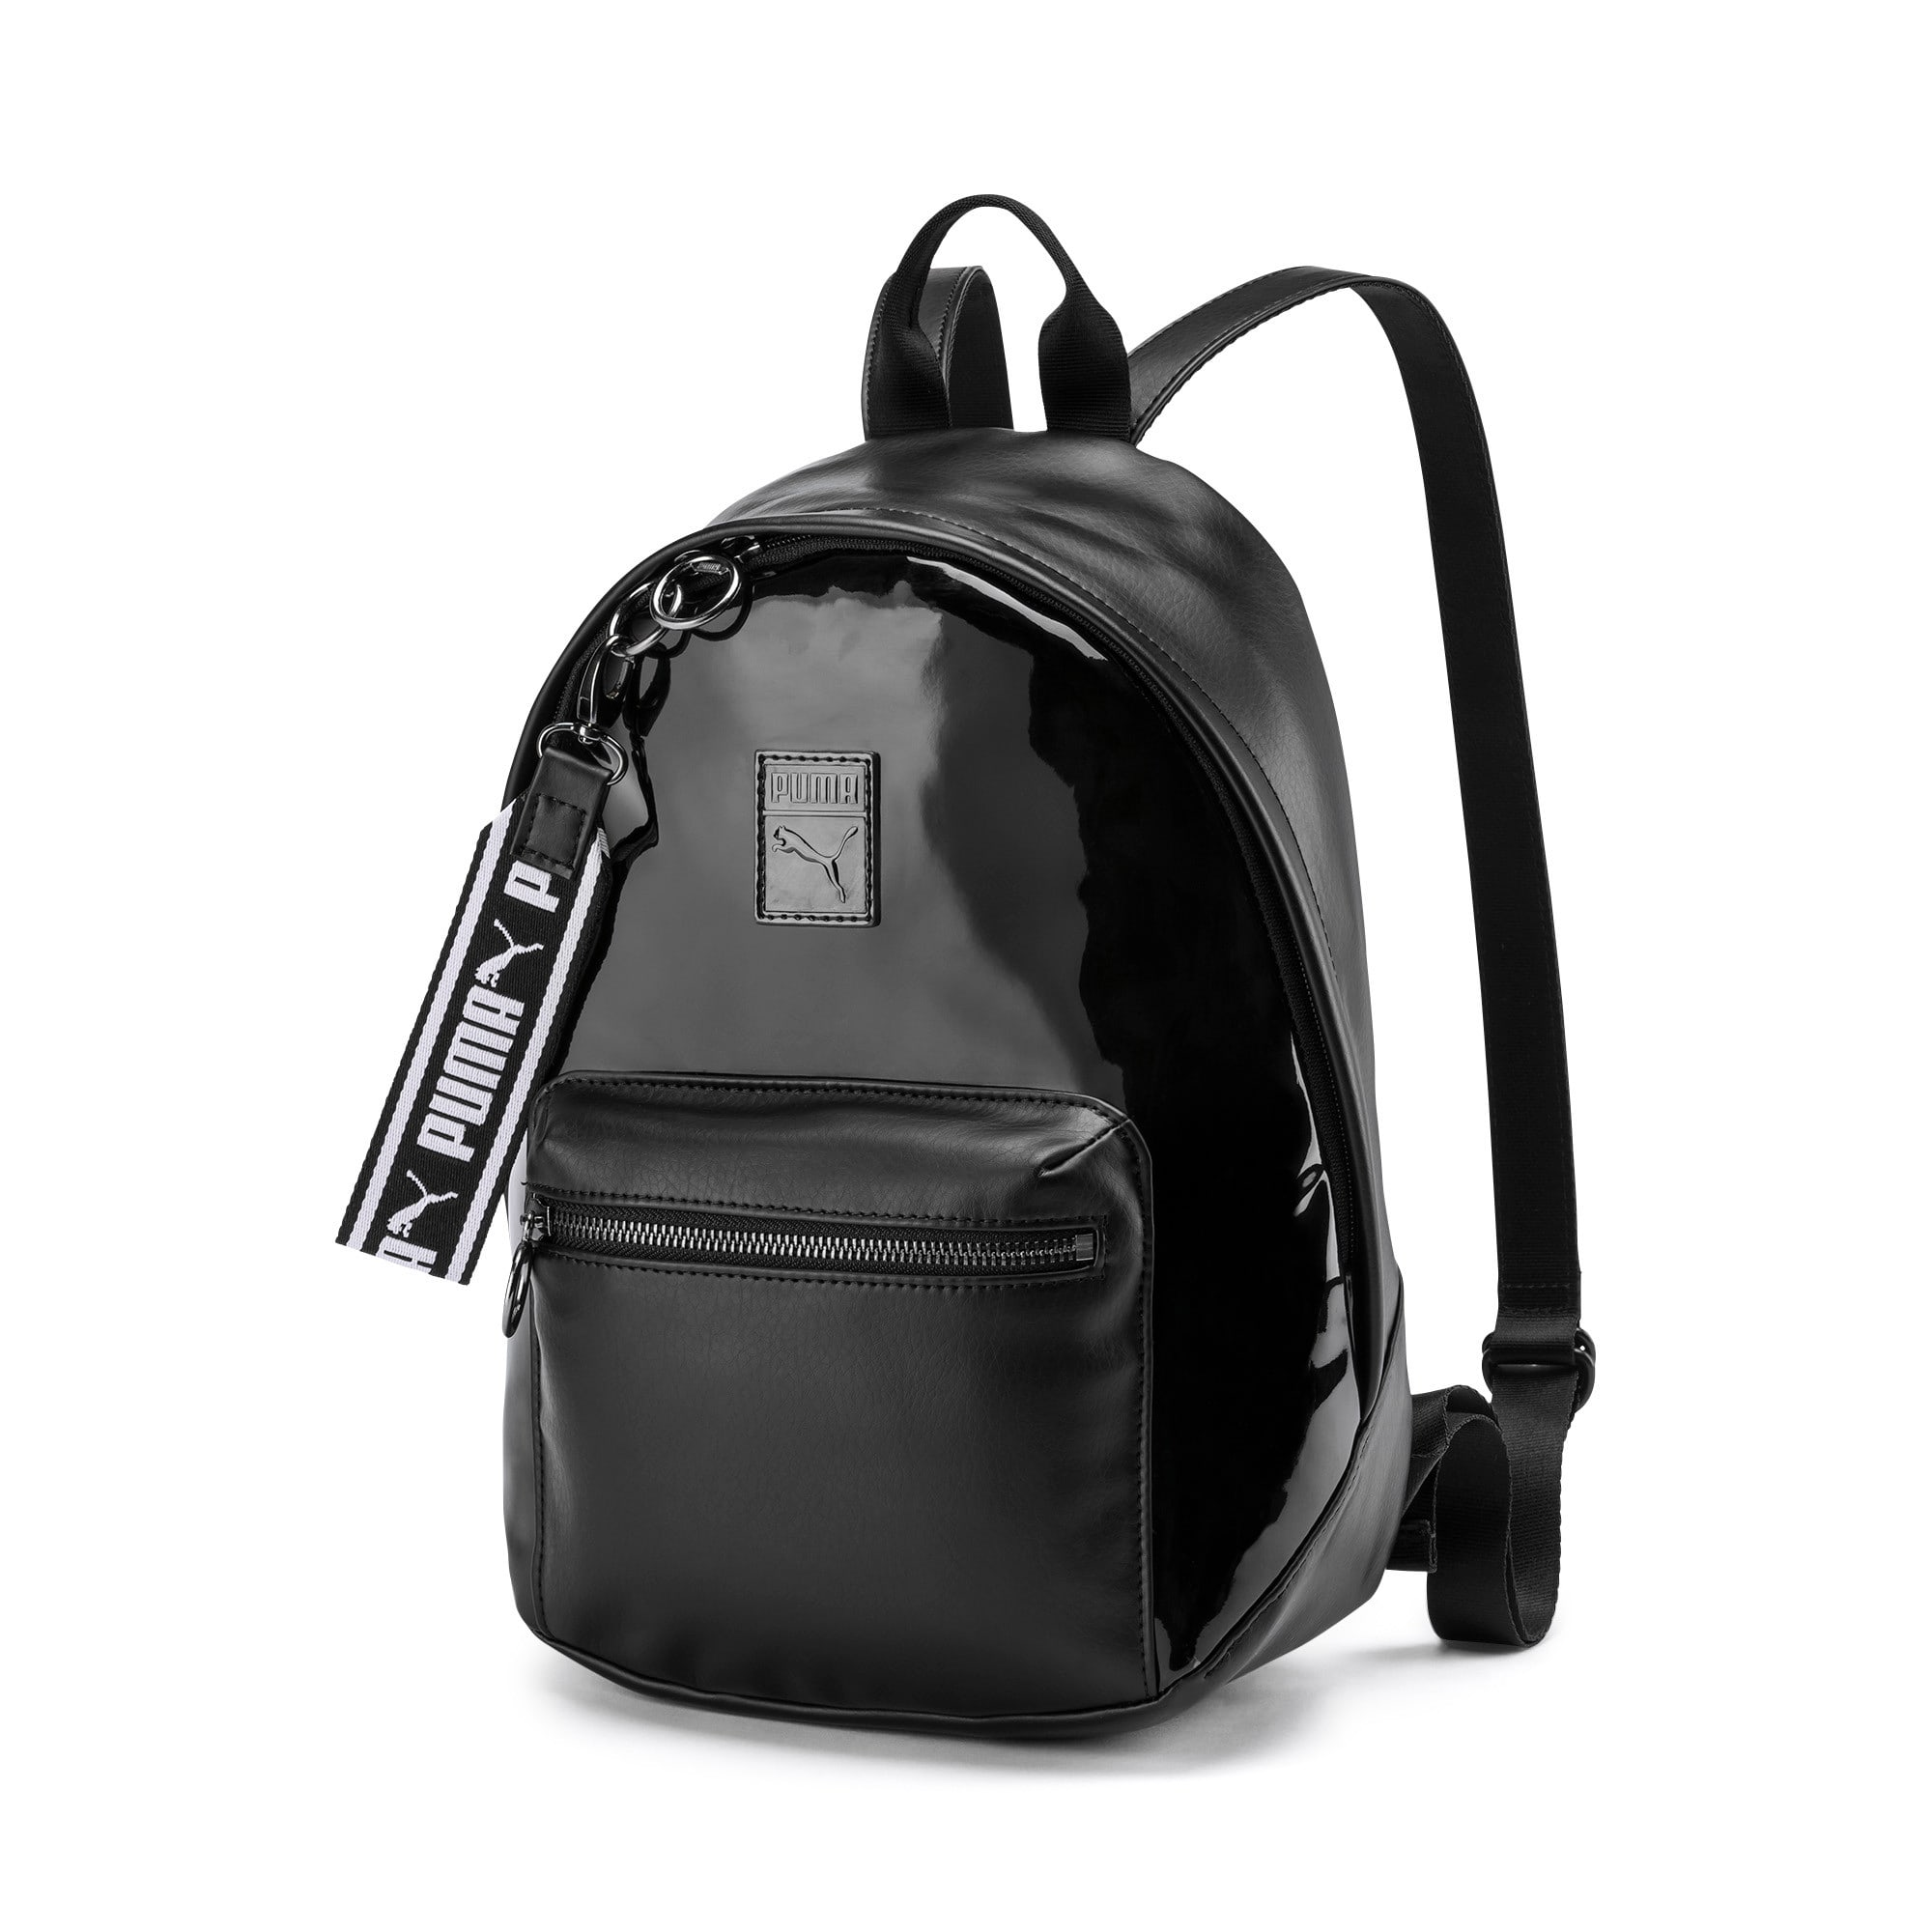 Thumbnail 1 of Premium Women's Backpack, Puma Black, medium